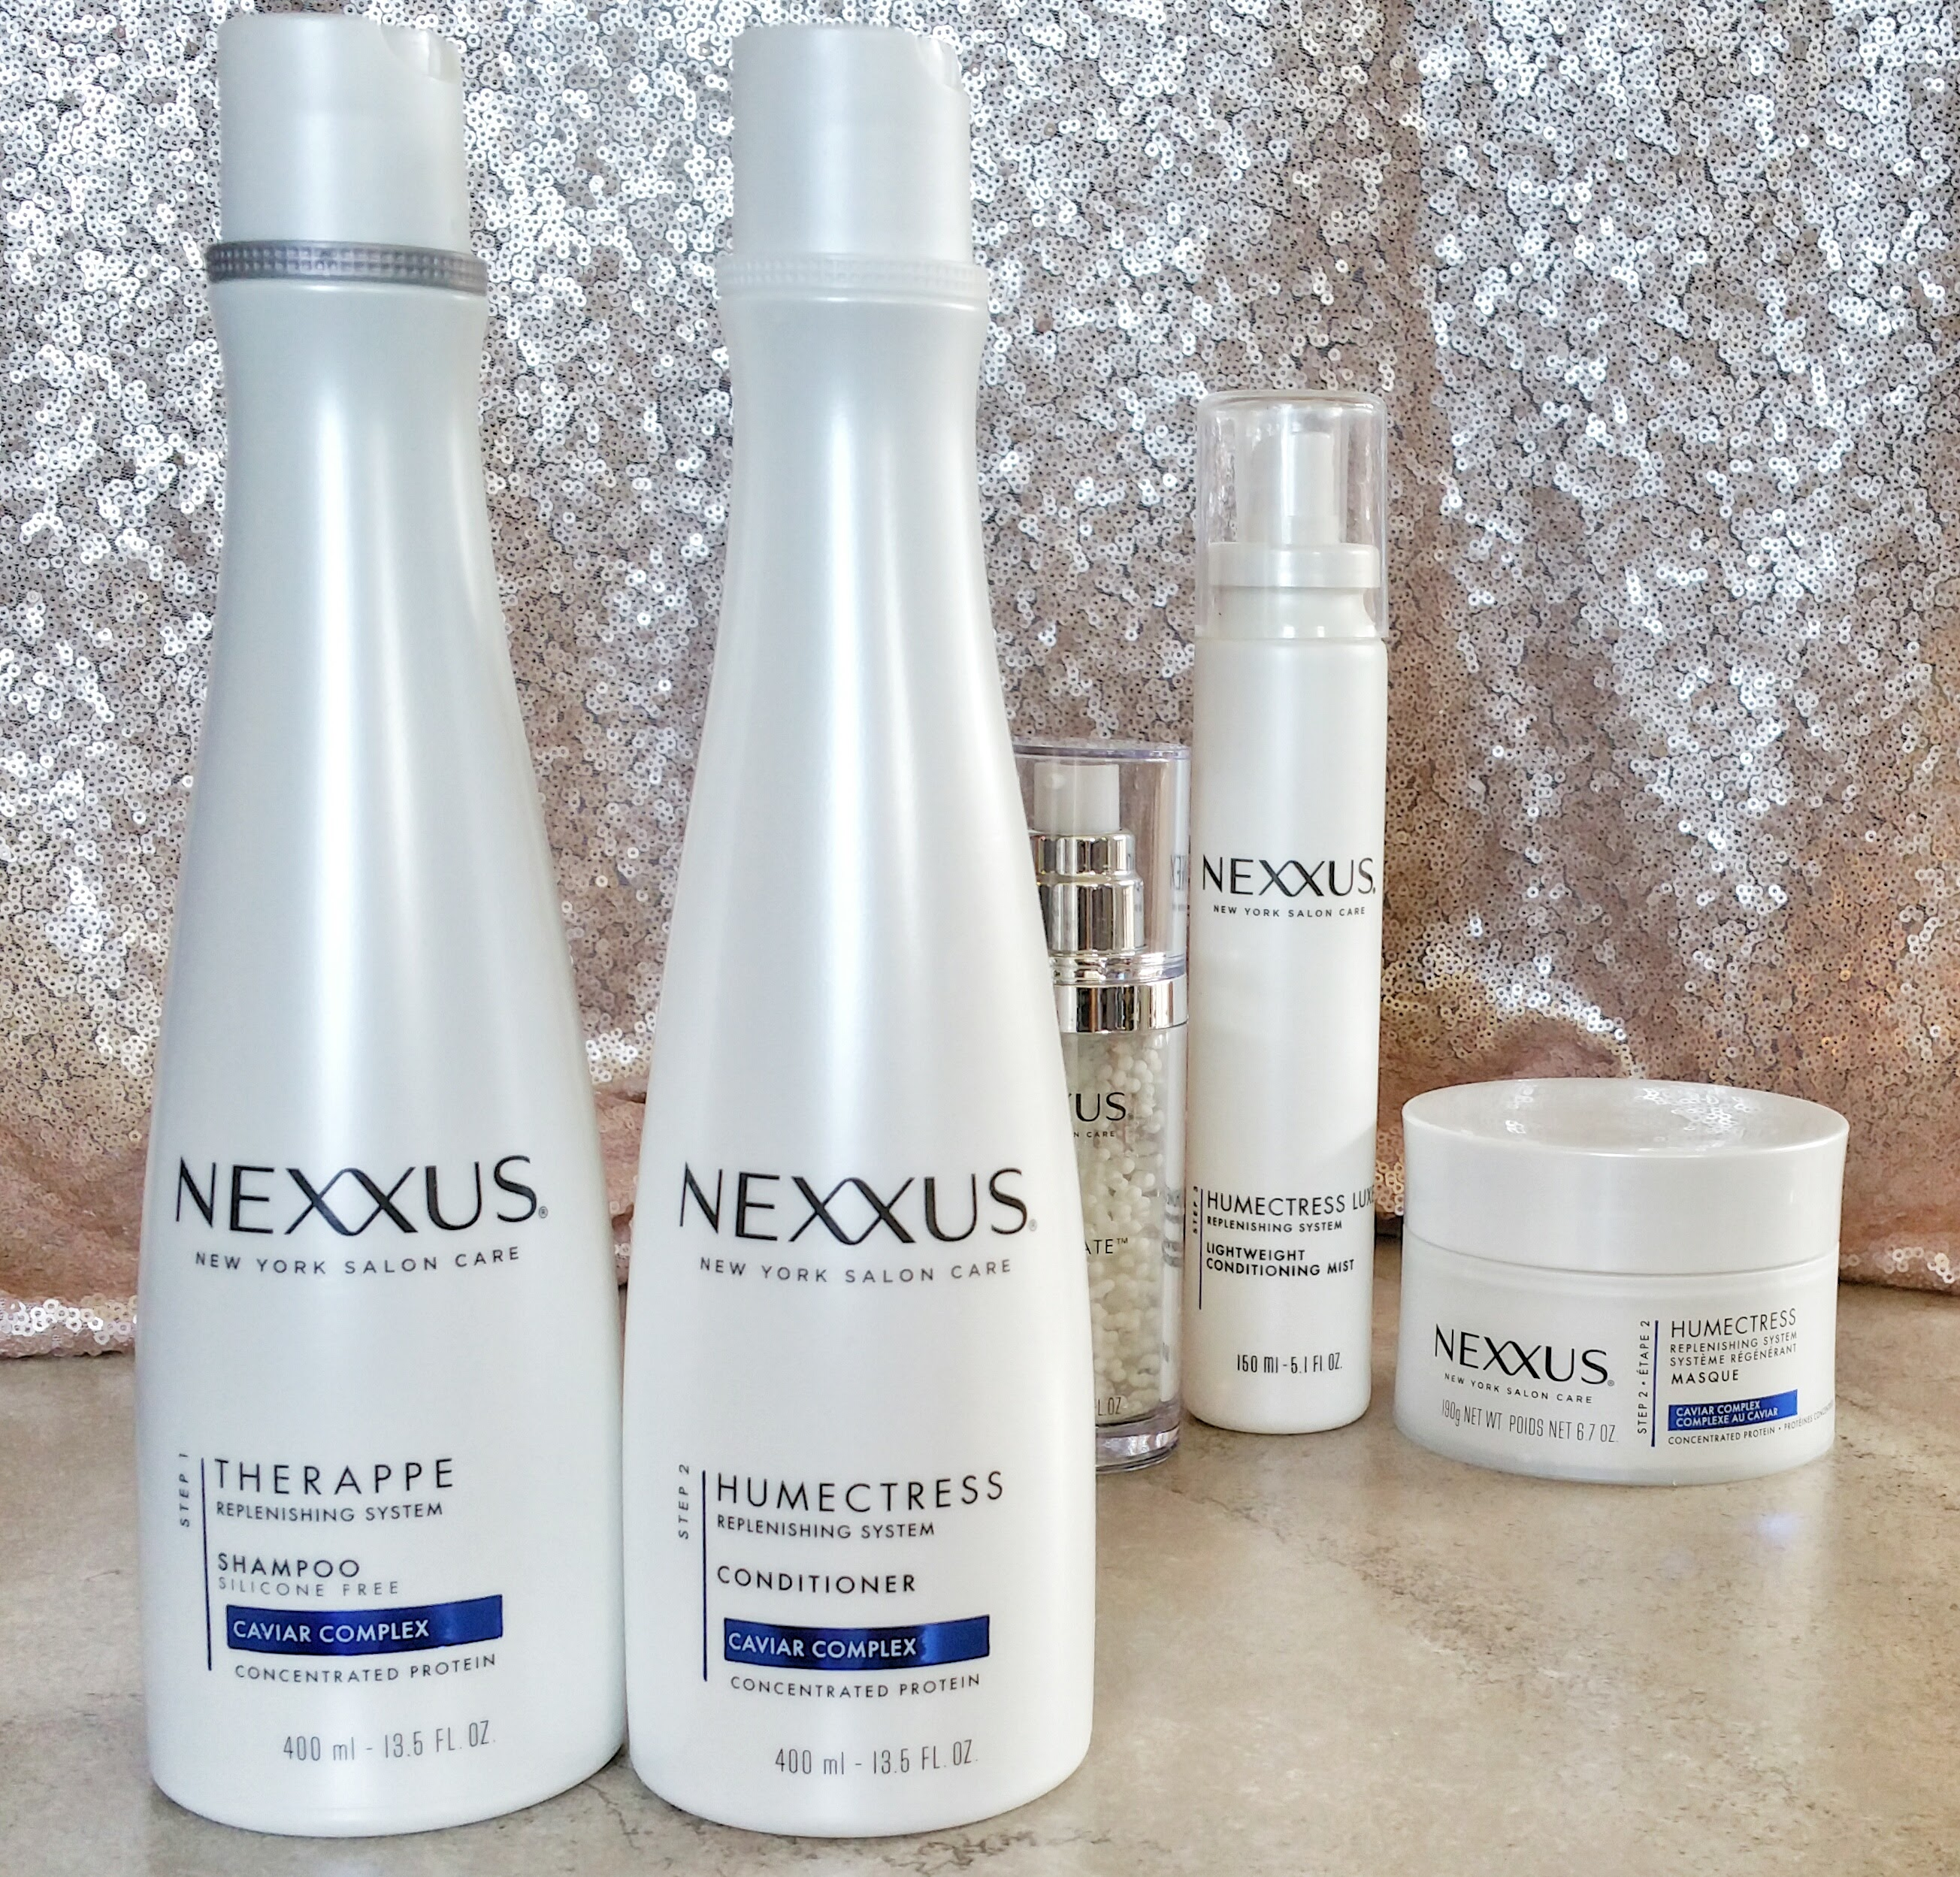 Nexxus New York Salon Care, hair care, hair, Nexxus, hair products, curly hair, how to care for curly hair, affordable hair care, salon quality hair care, review, hair care review, hair masque, hair serum, shampoo, conditioner, leave-in conditioner, hair leave in treatment,